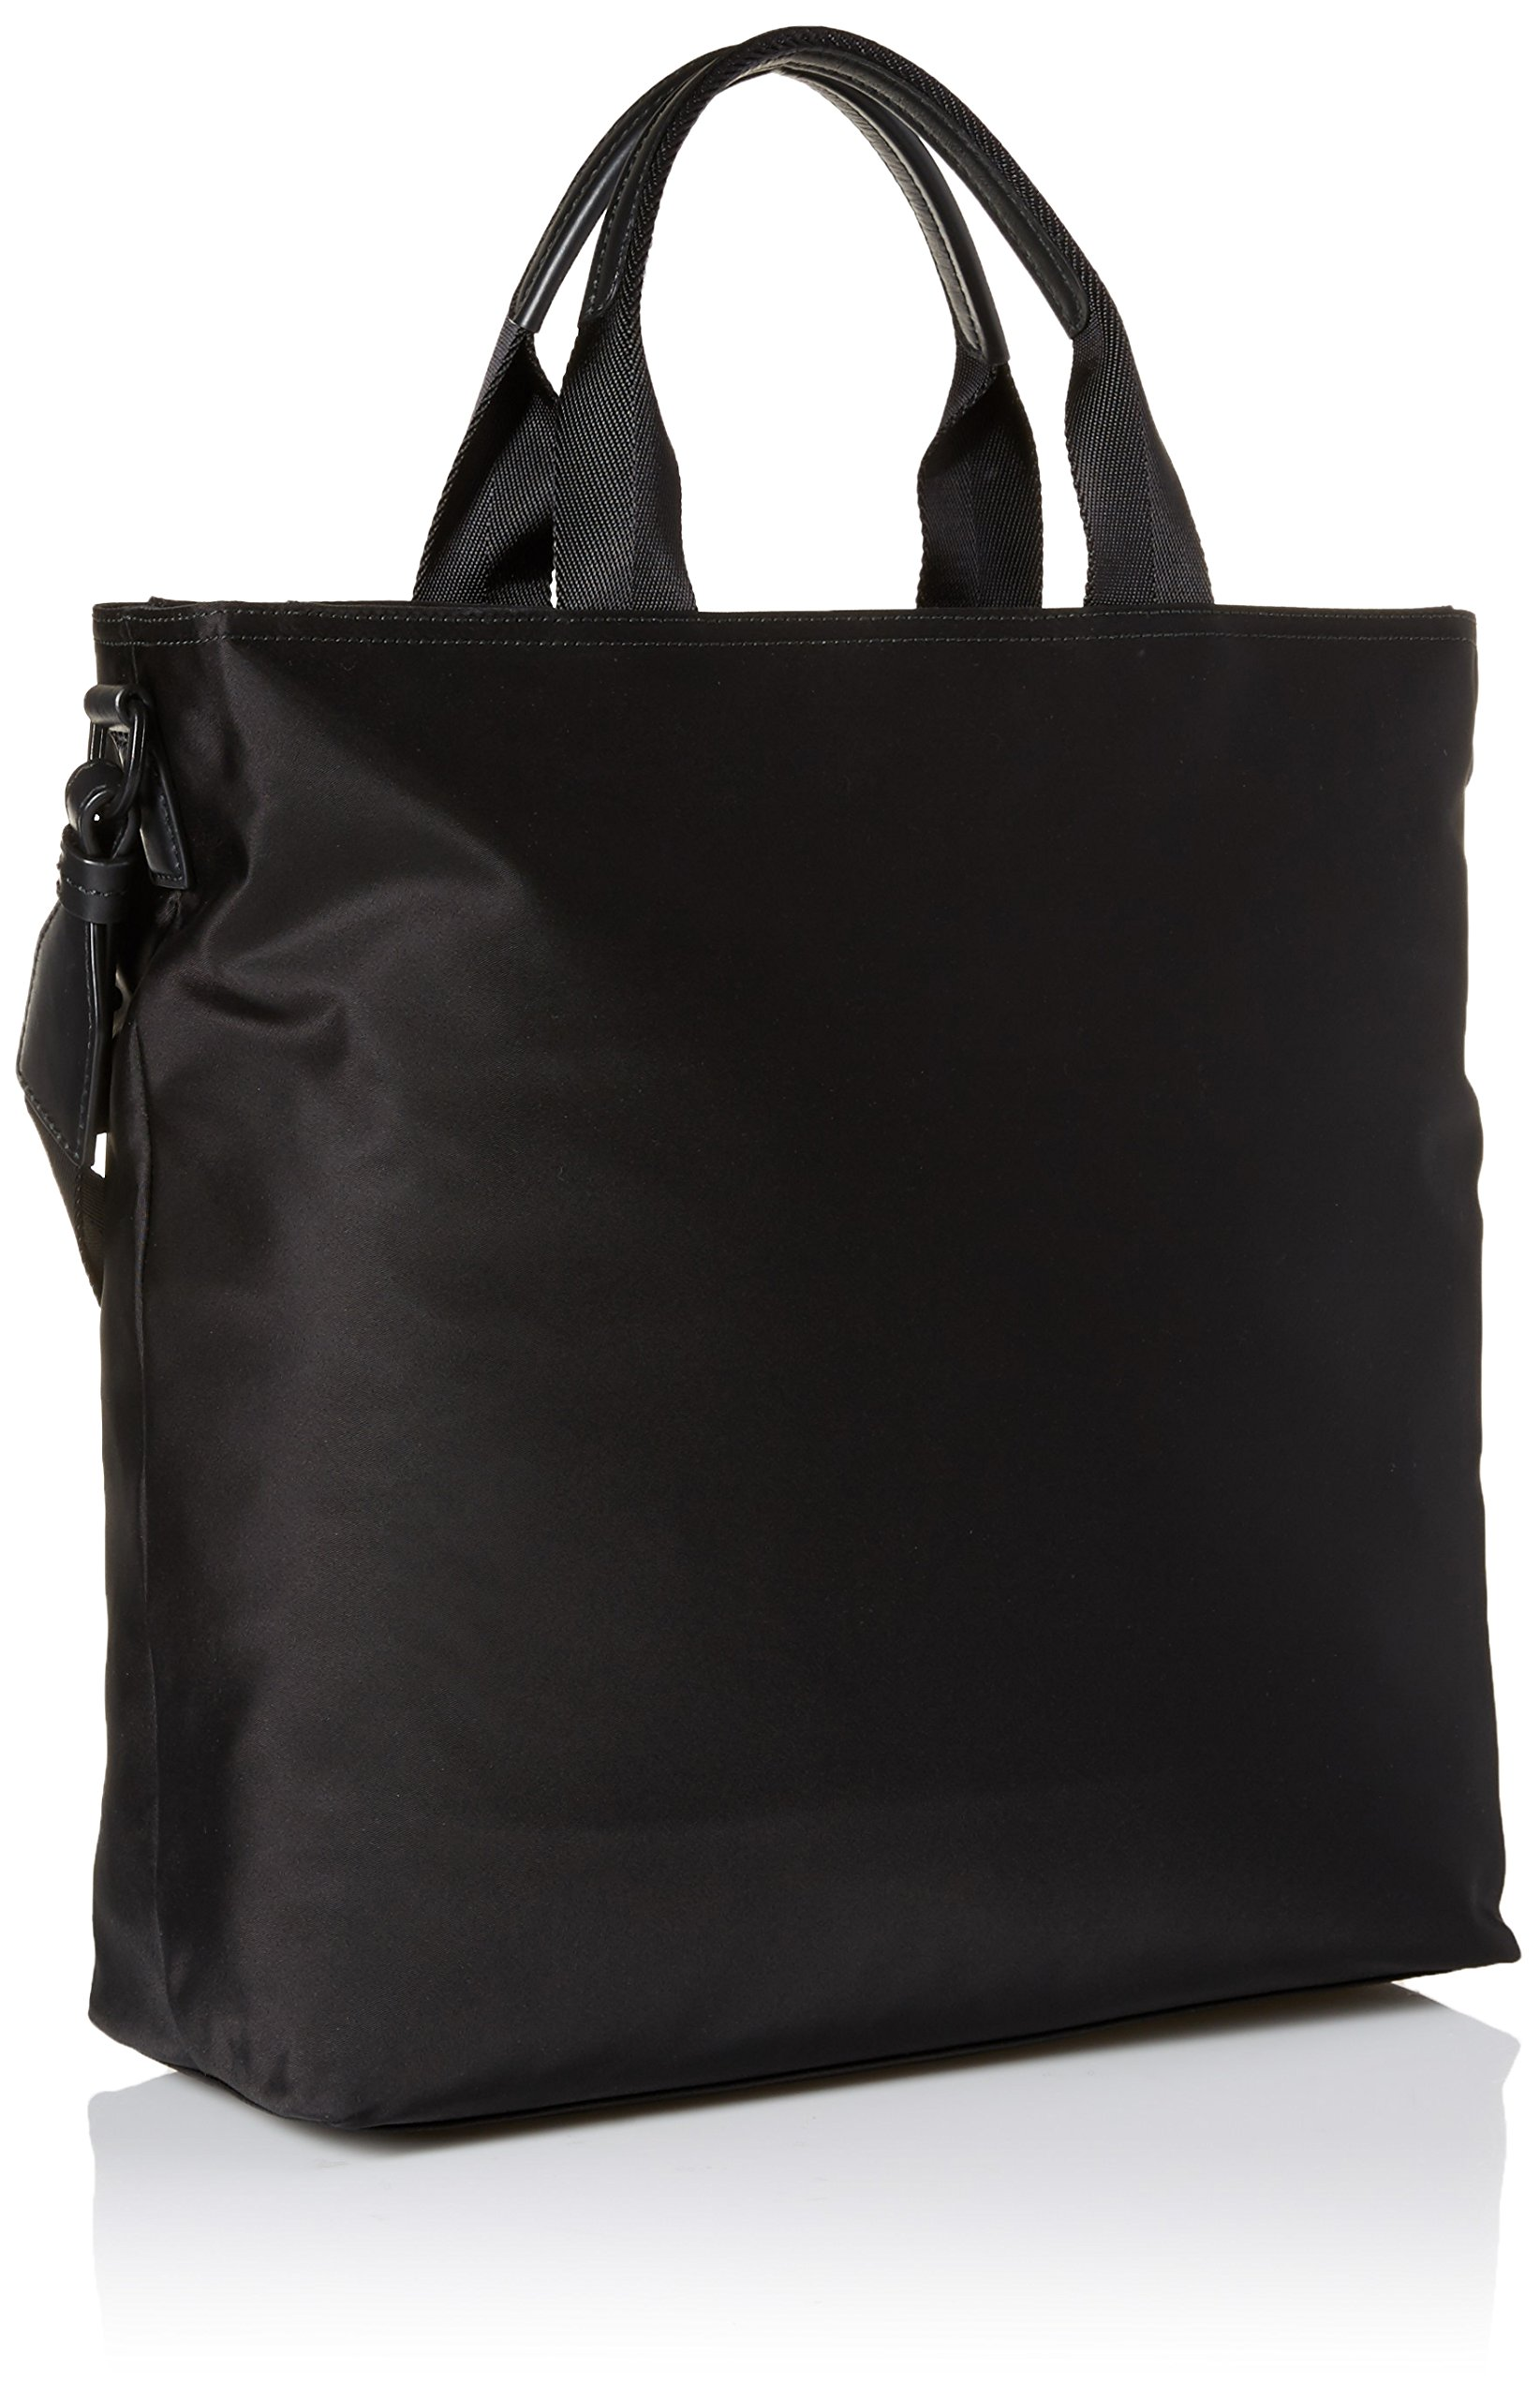 HUGO by Hugo Boss Men's Record Nylon Tote Bag, black, One Size by Hugo Boss (Image #2)